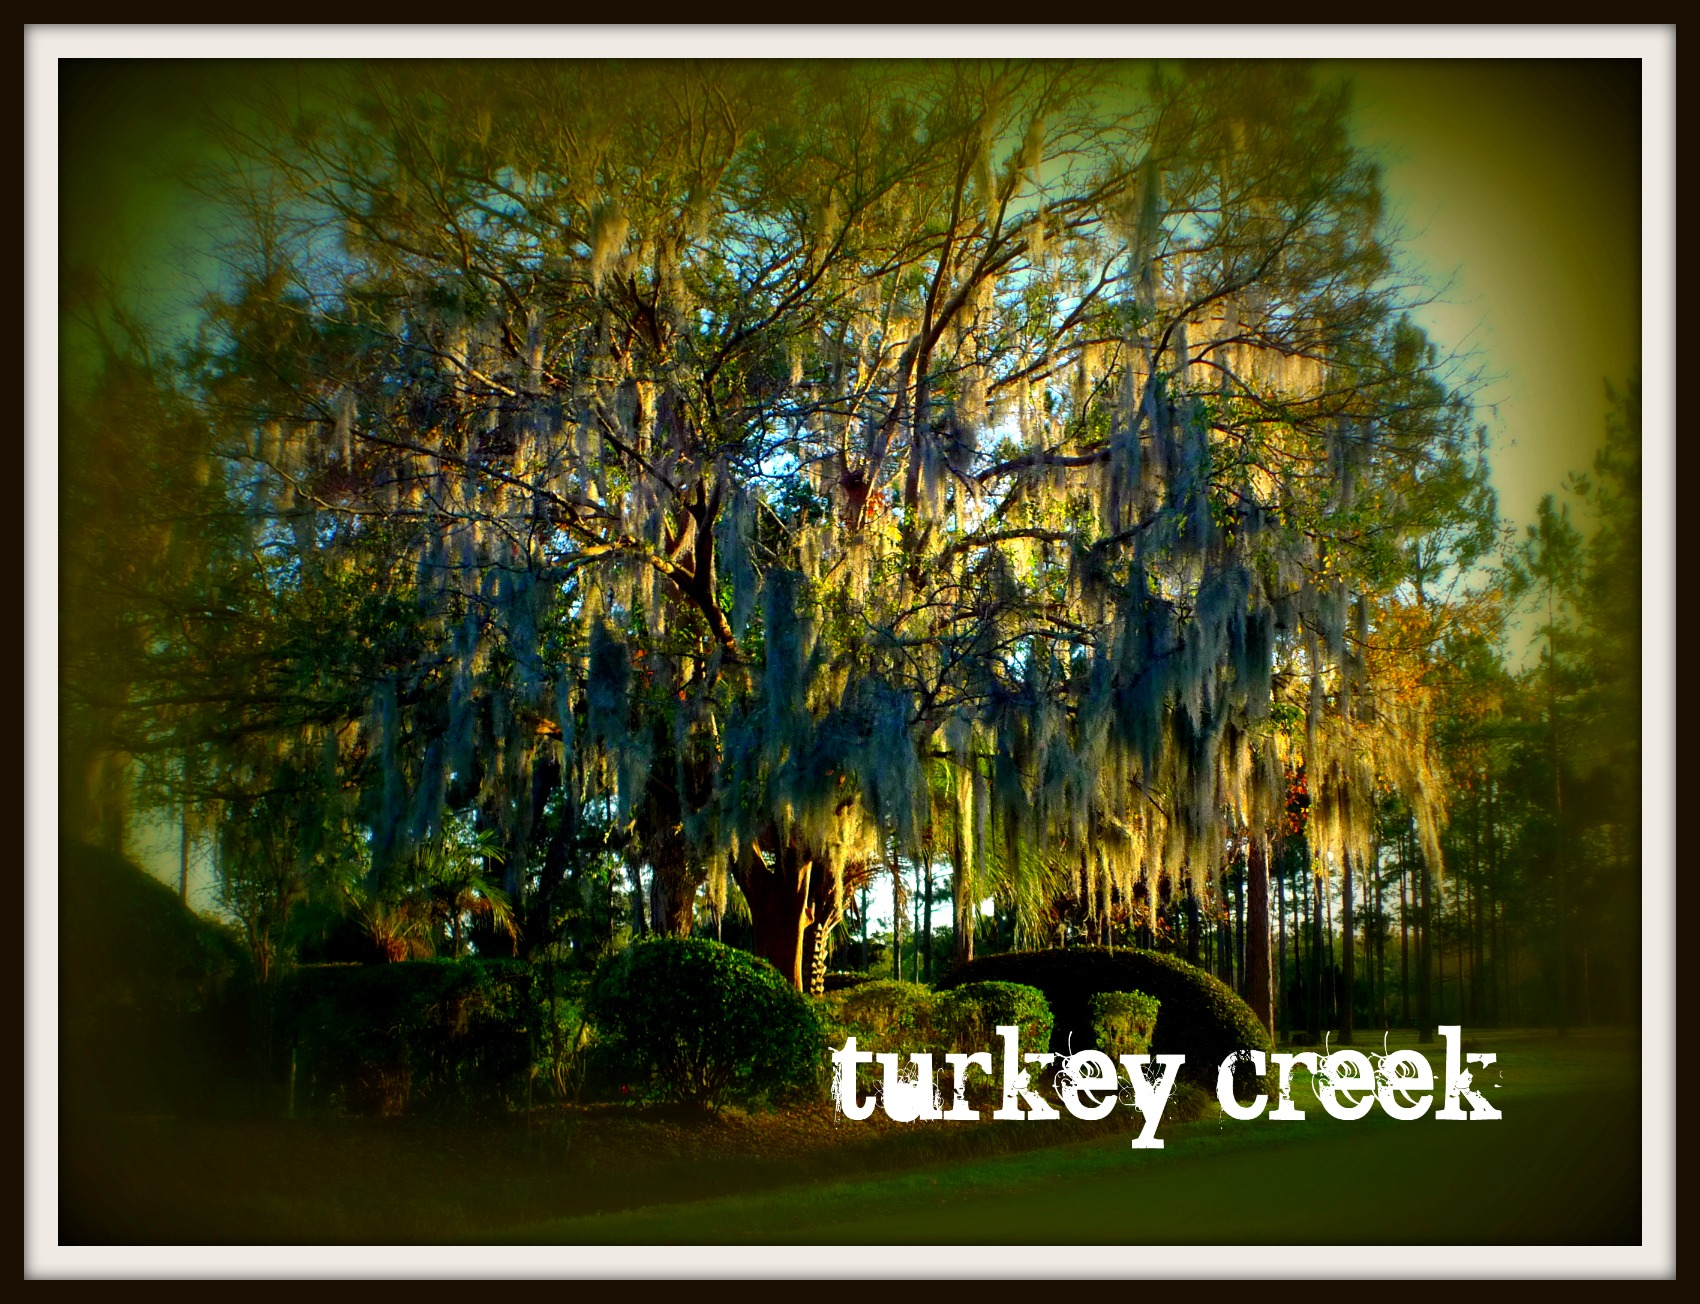 Turkey Creek neighborhood